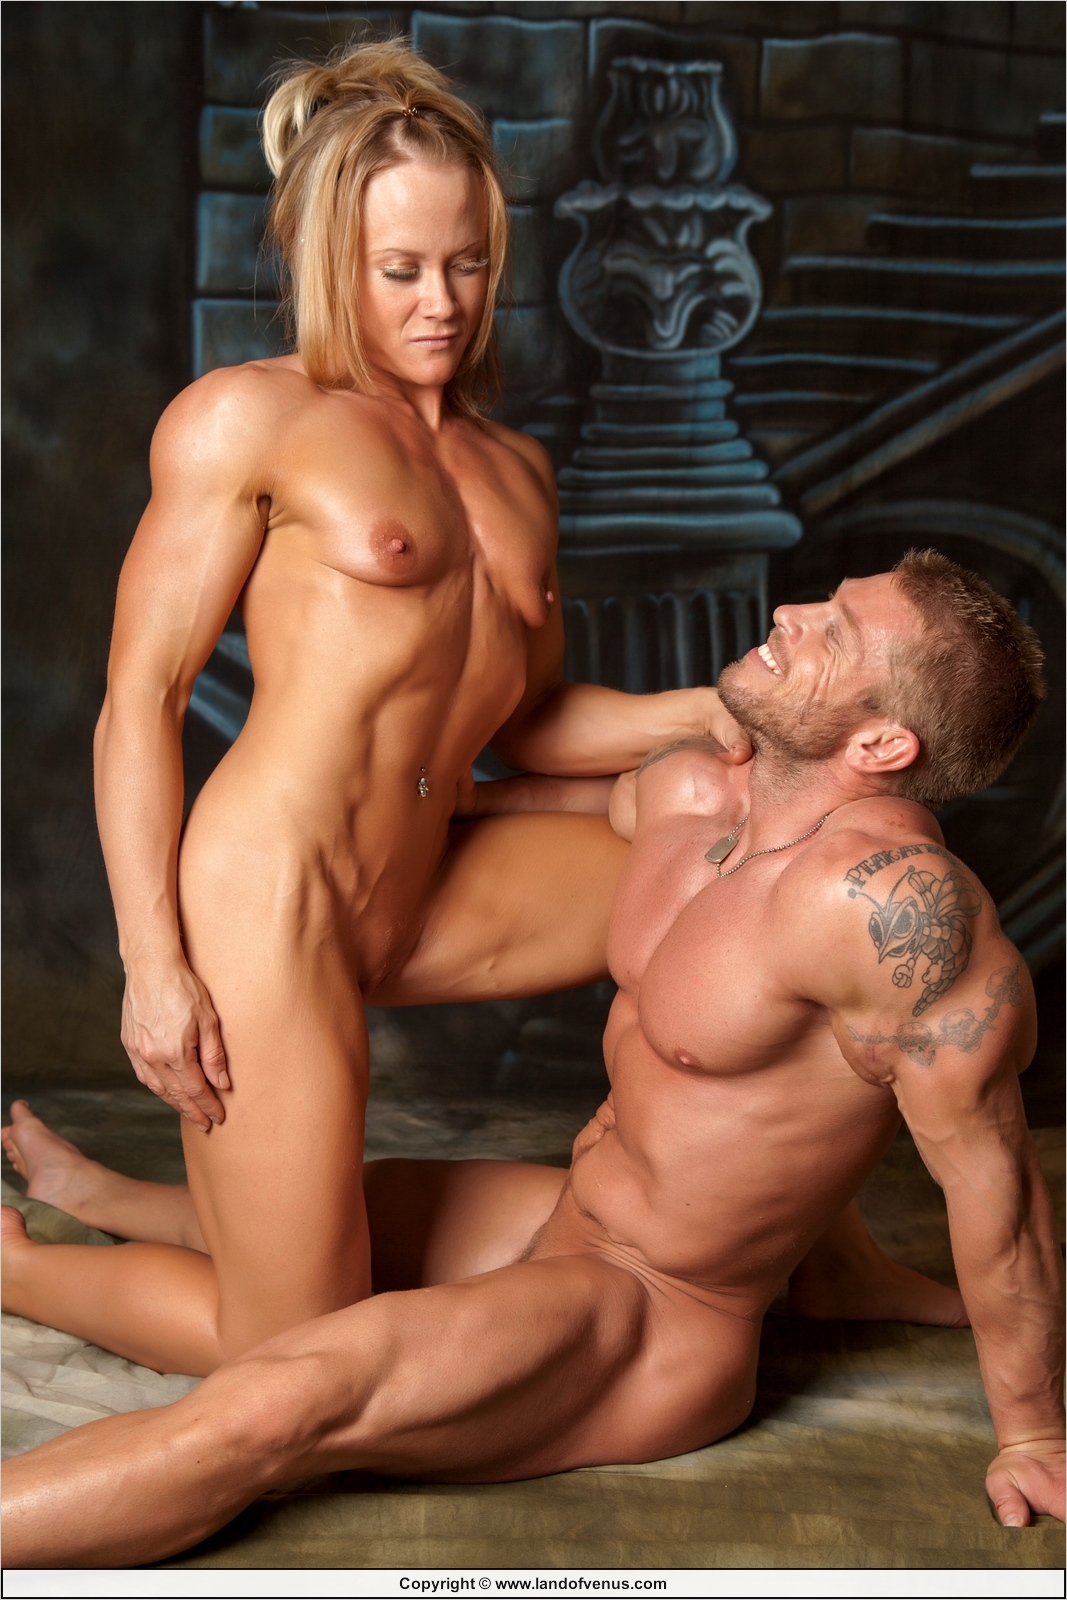 Free hardcore porn muscular women galleries hentay pictures